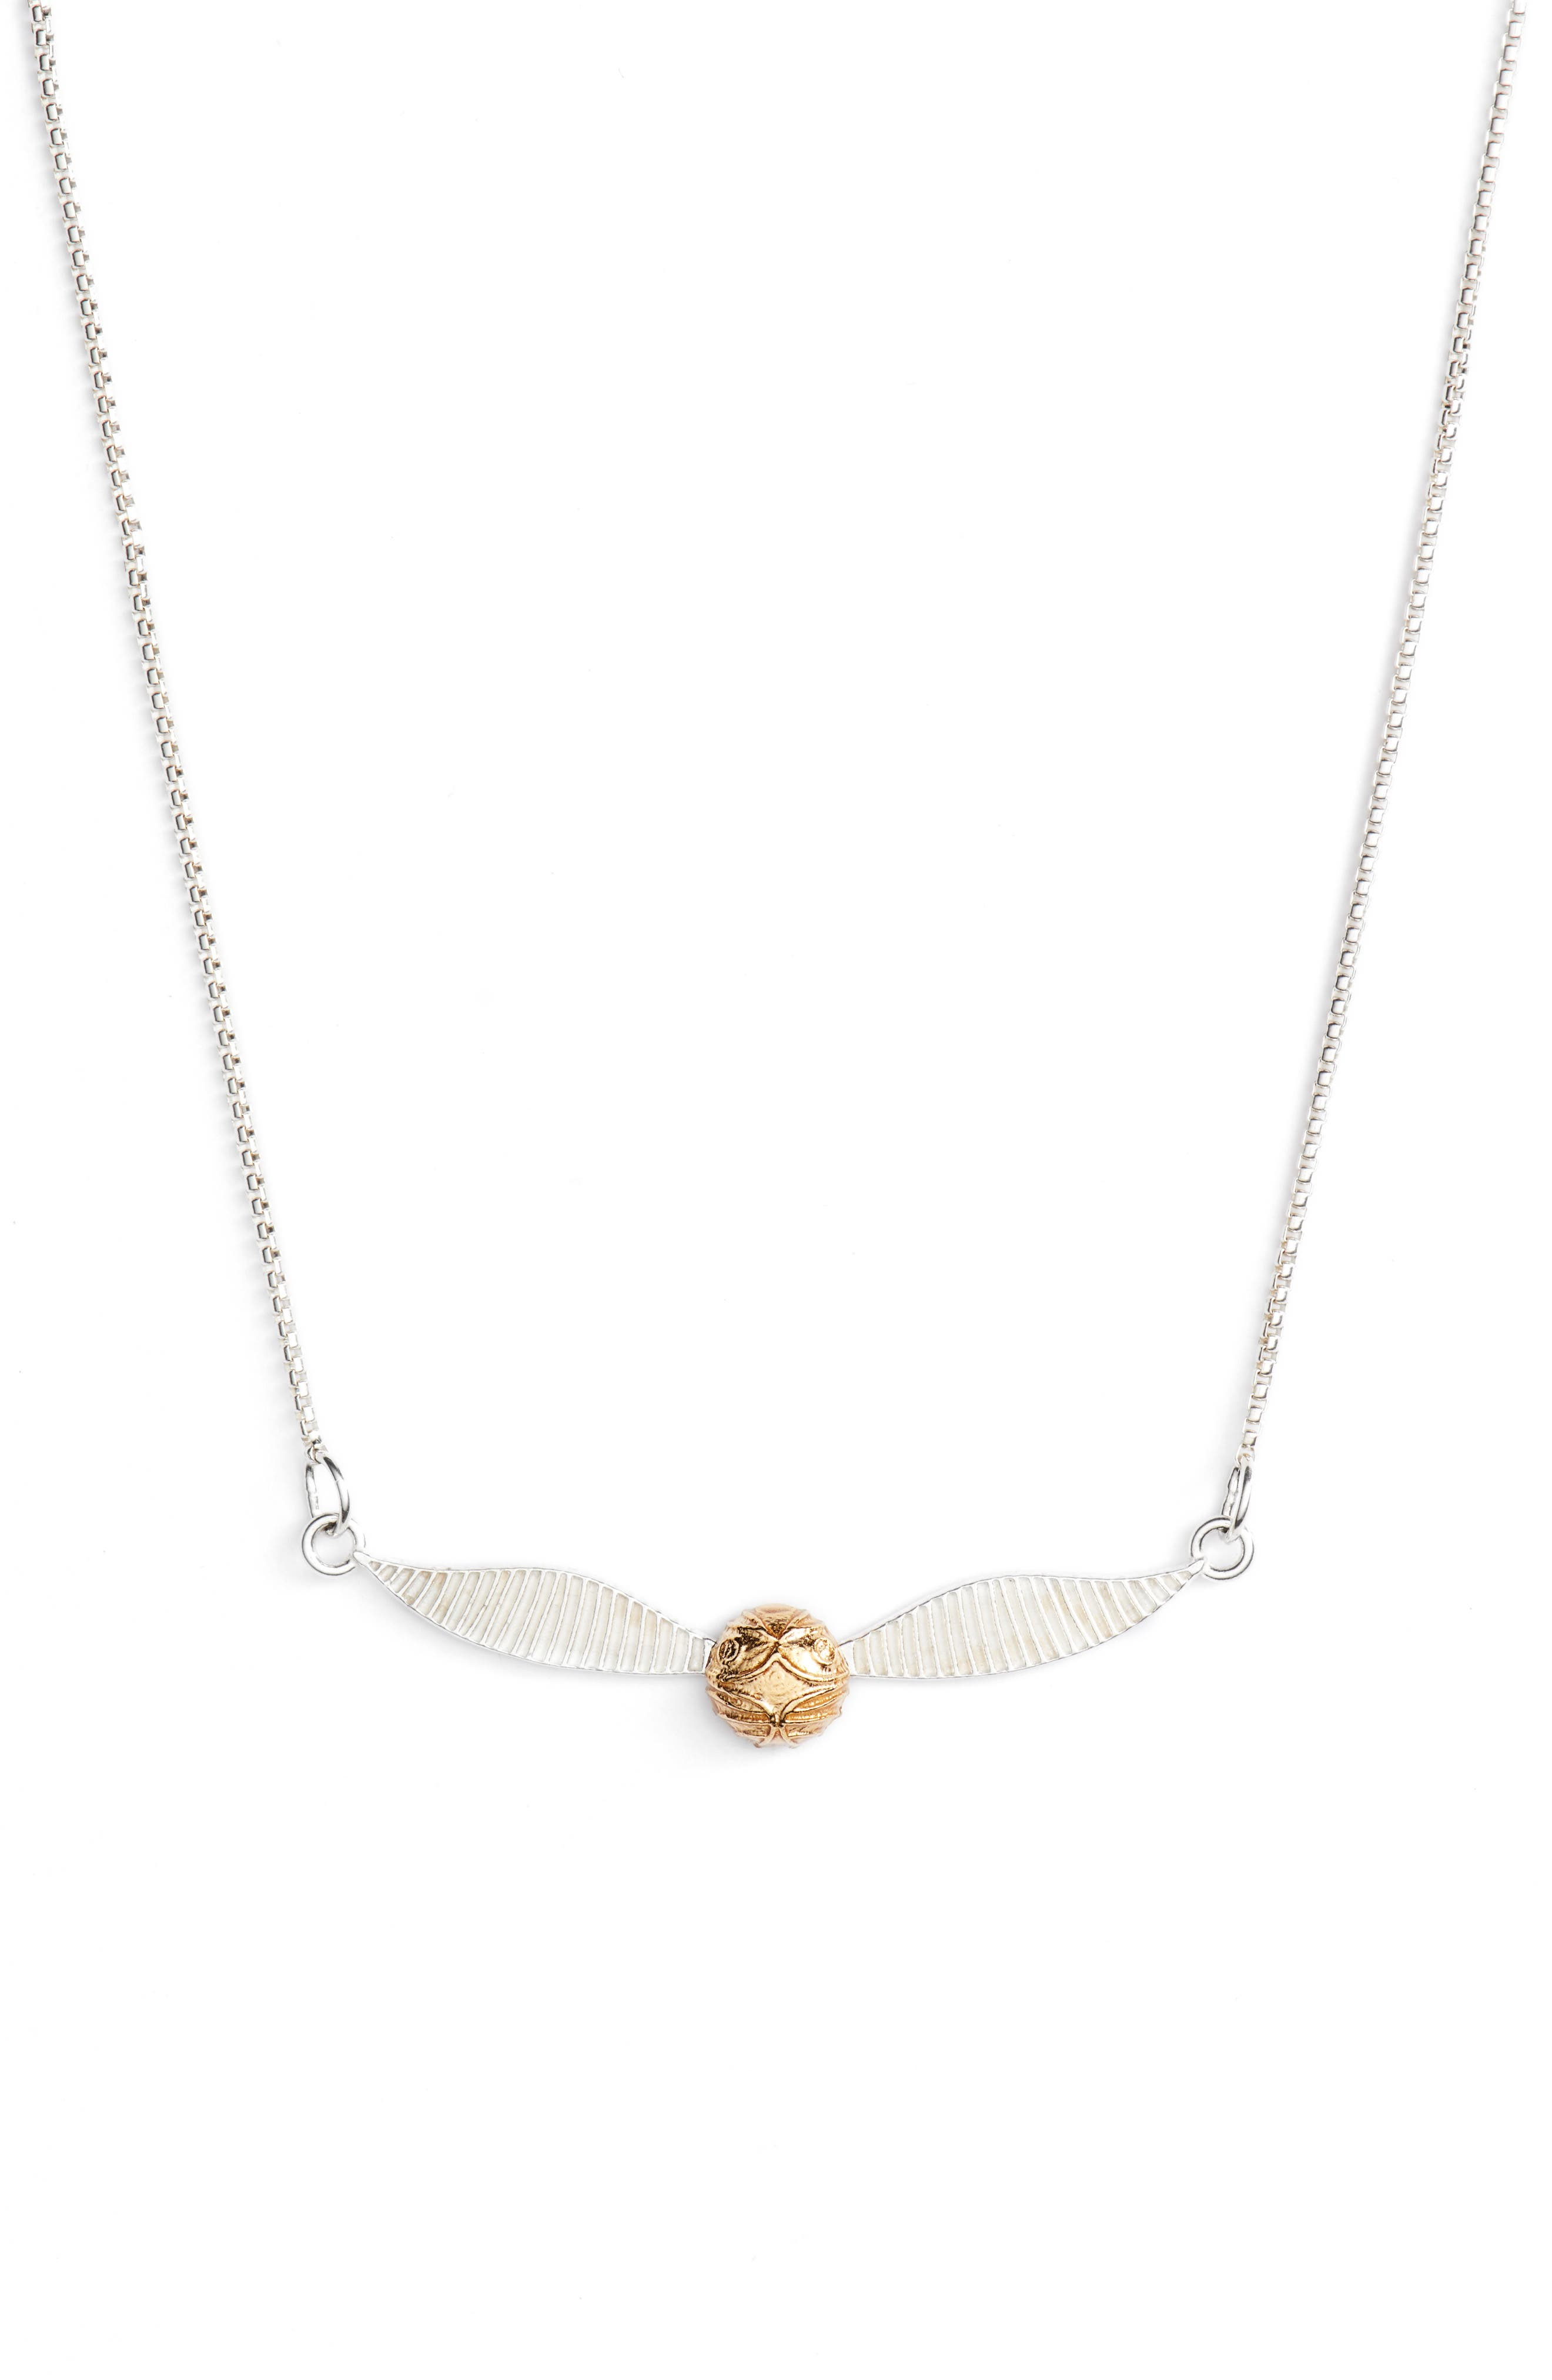 Harry Potter<sup>™</sup> Golden Snitch<sup>™</sup> Adjustable Necklace,                             Main thumbnail 1, color,                             Two-Toned